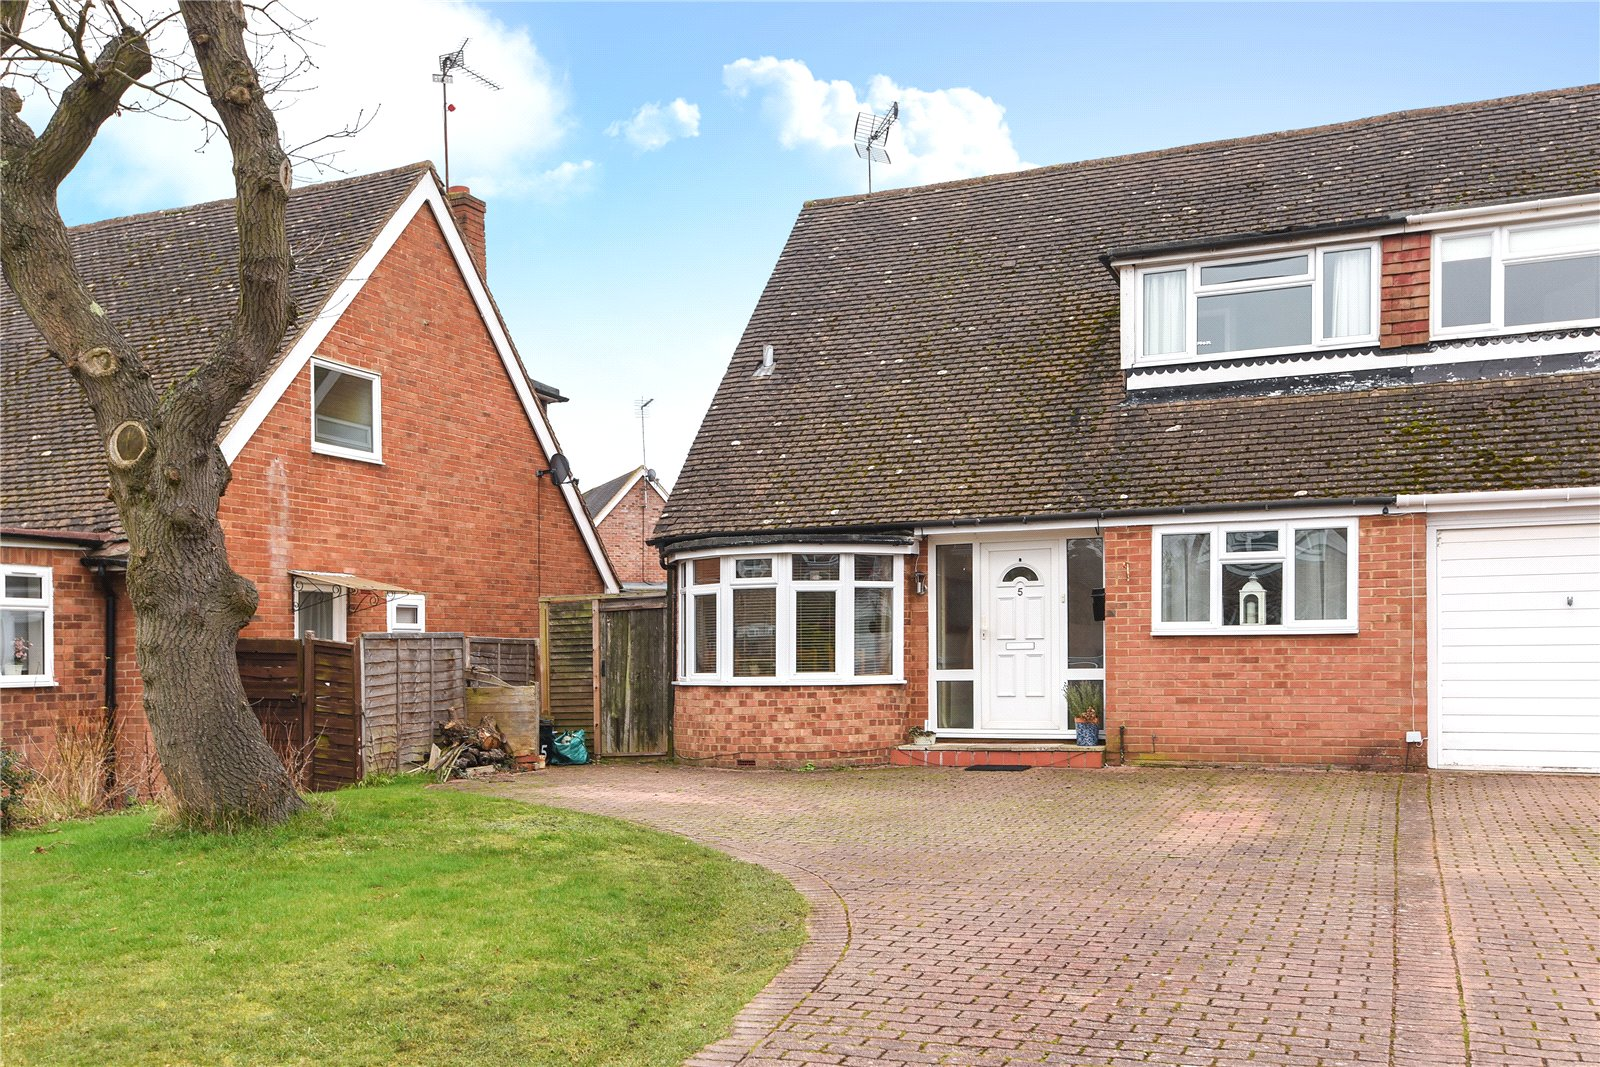 4 Bedrooms Semi Detached House for sale in Deerhurst Avenue, Winnersh, Wokingham, Berkshire, RG41